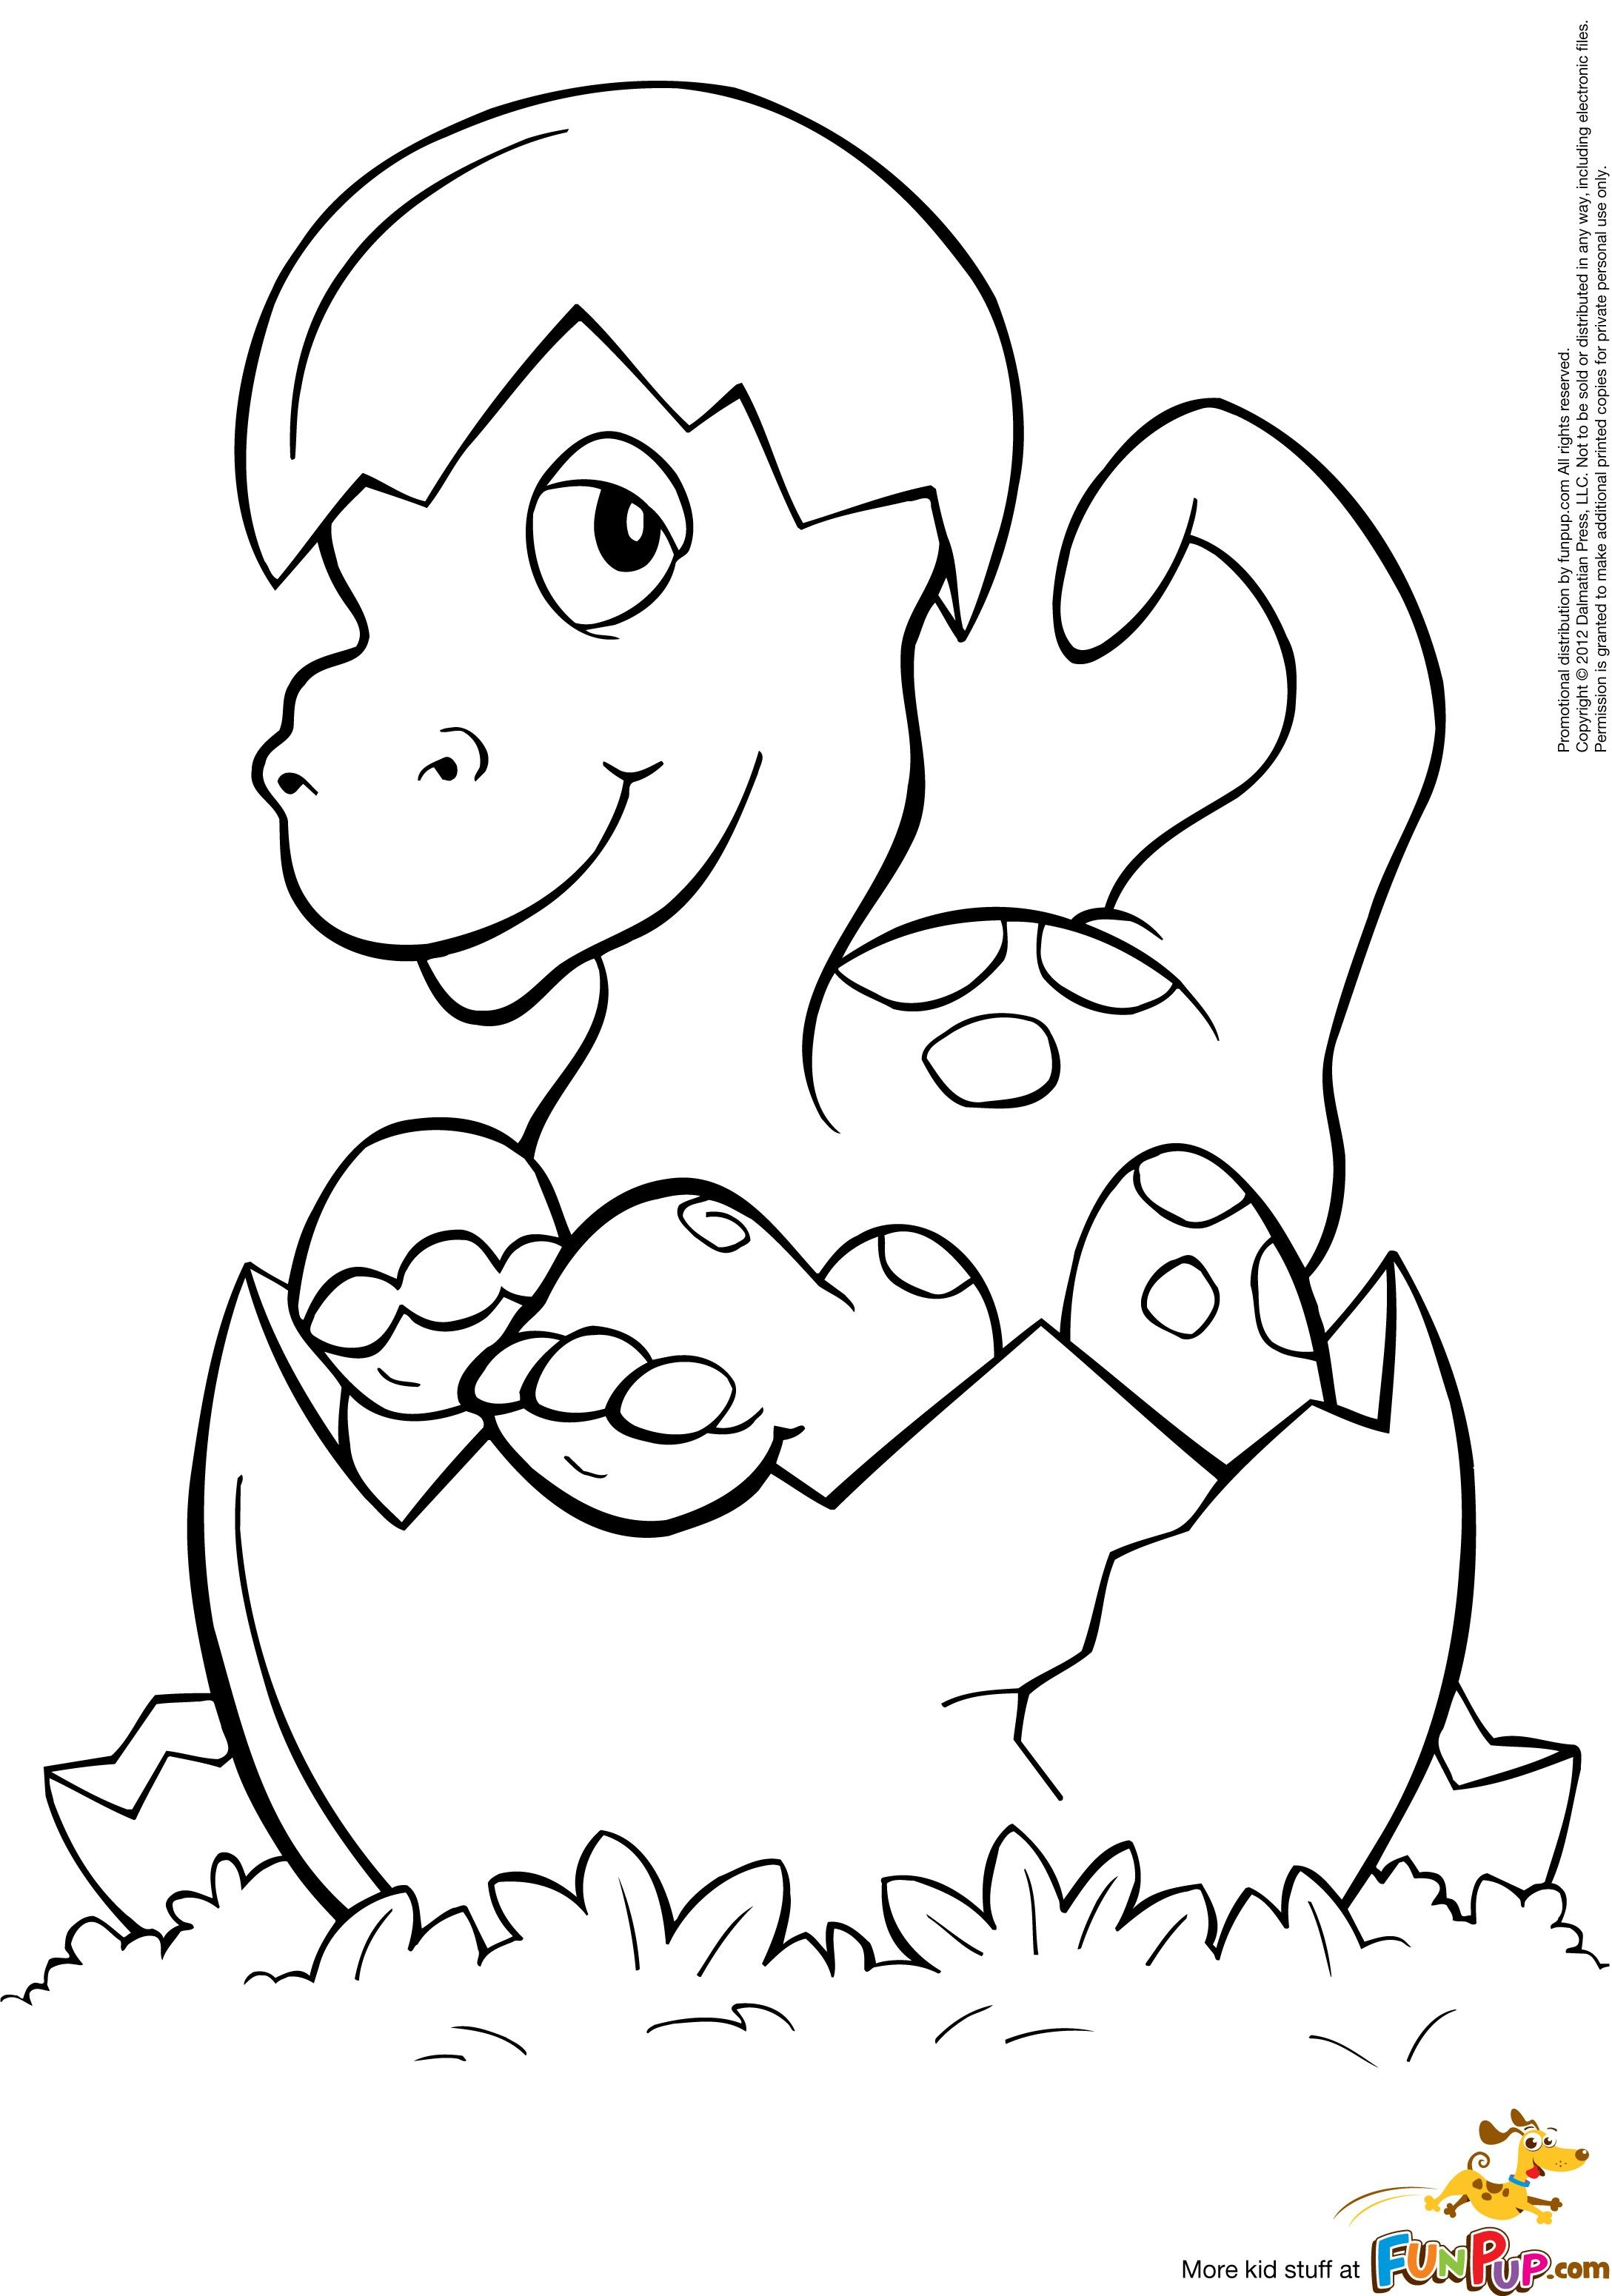 hatched baby dino 0 00 line drawings pinterest babies